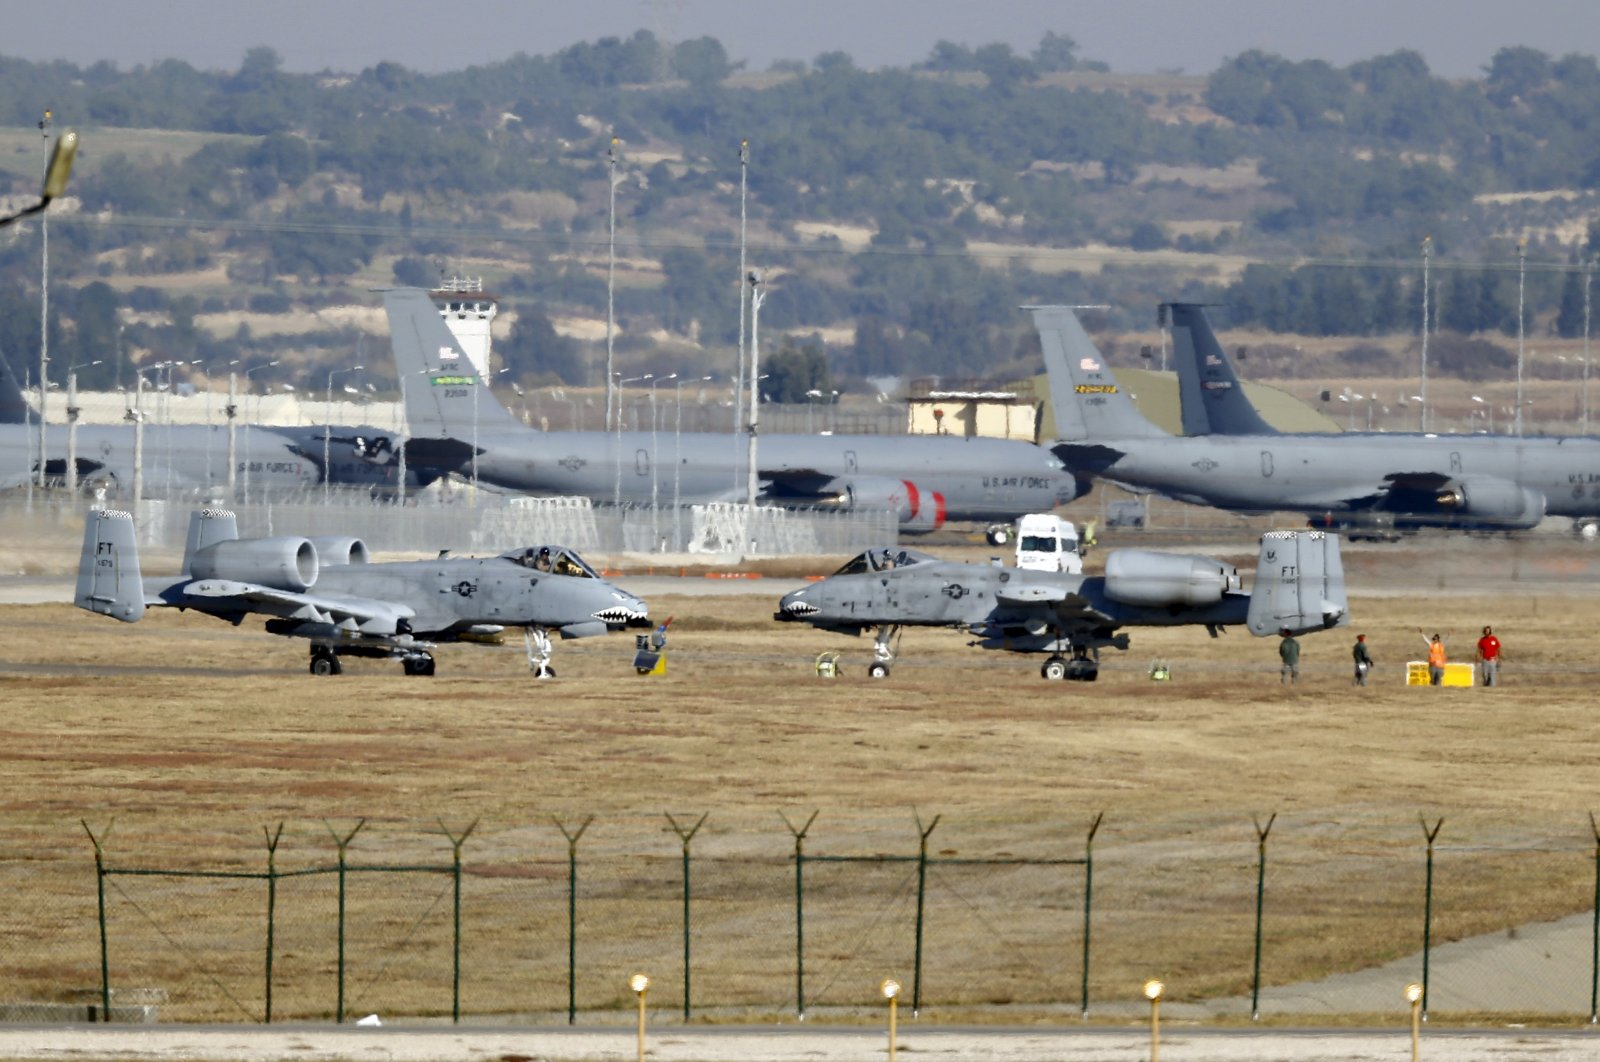 Two U.S. Air Force A-10 Thunderbolt II fighter jets (foreground) sit at the Incirlik Air Base in Adana, southern Turkey, Dec. 11, 2015. (Reuters Photo)